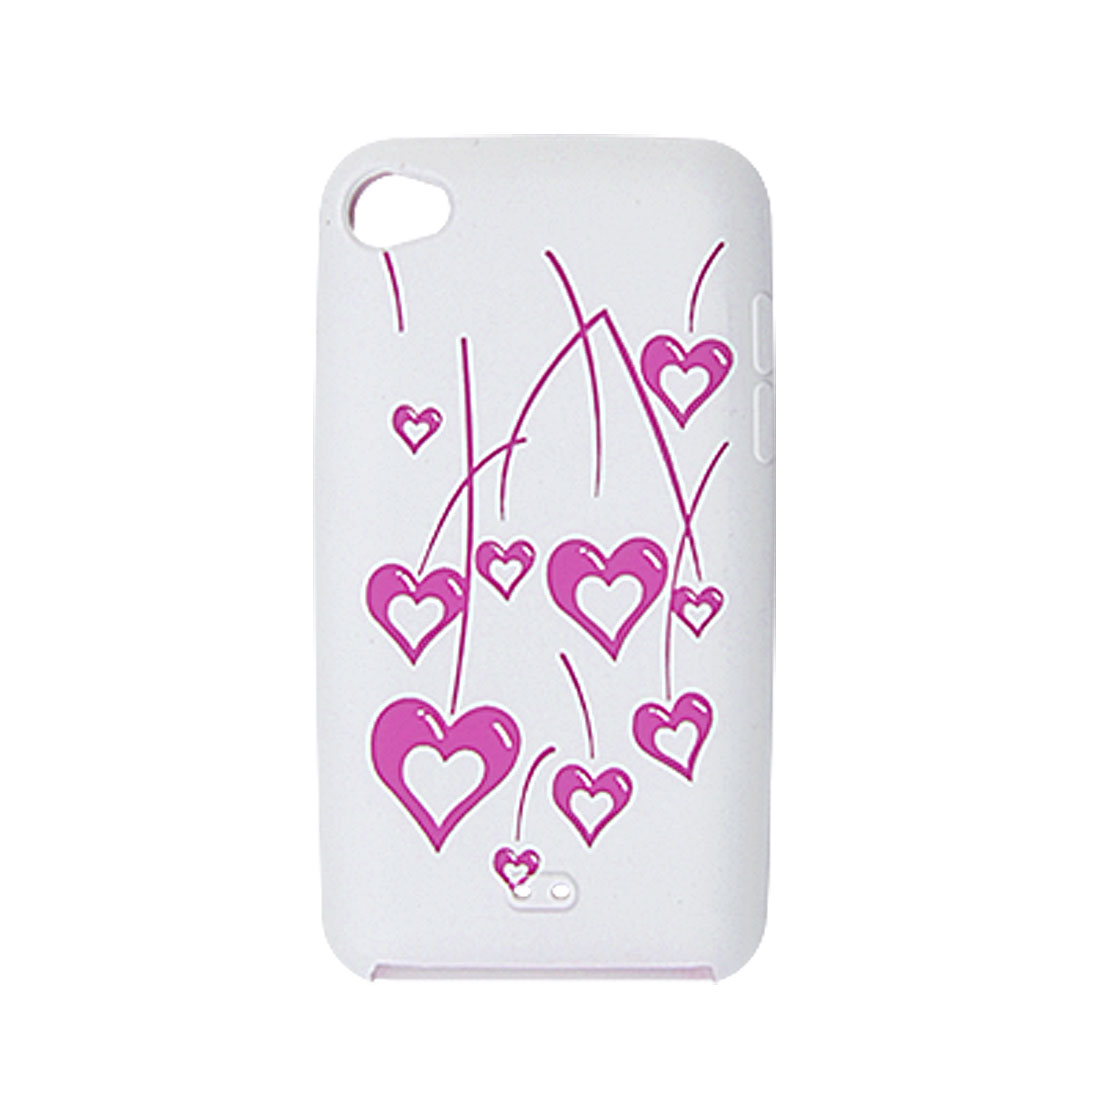 Soft Silicone Heart Skin Fuchsia White Case for iPod Touch 4G